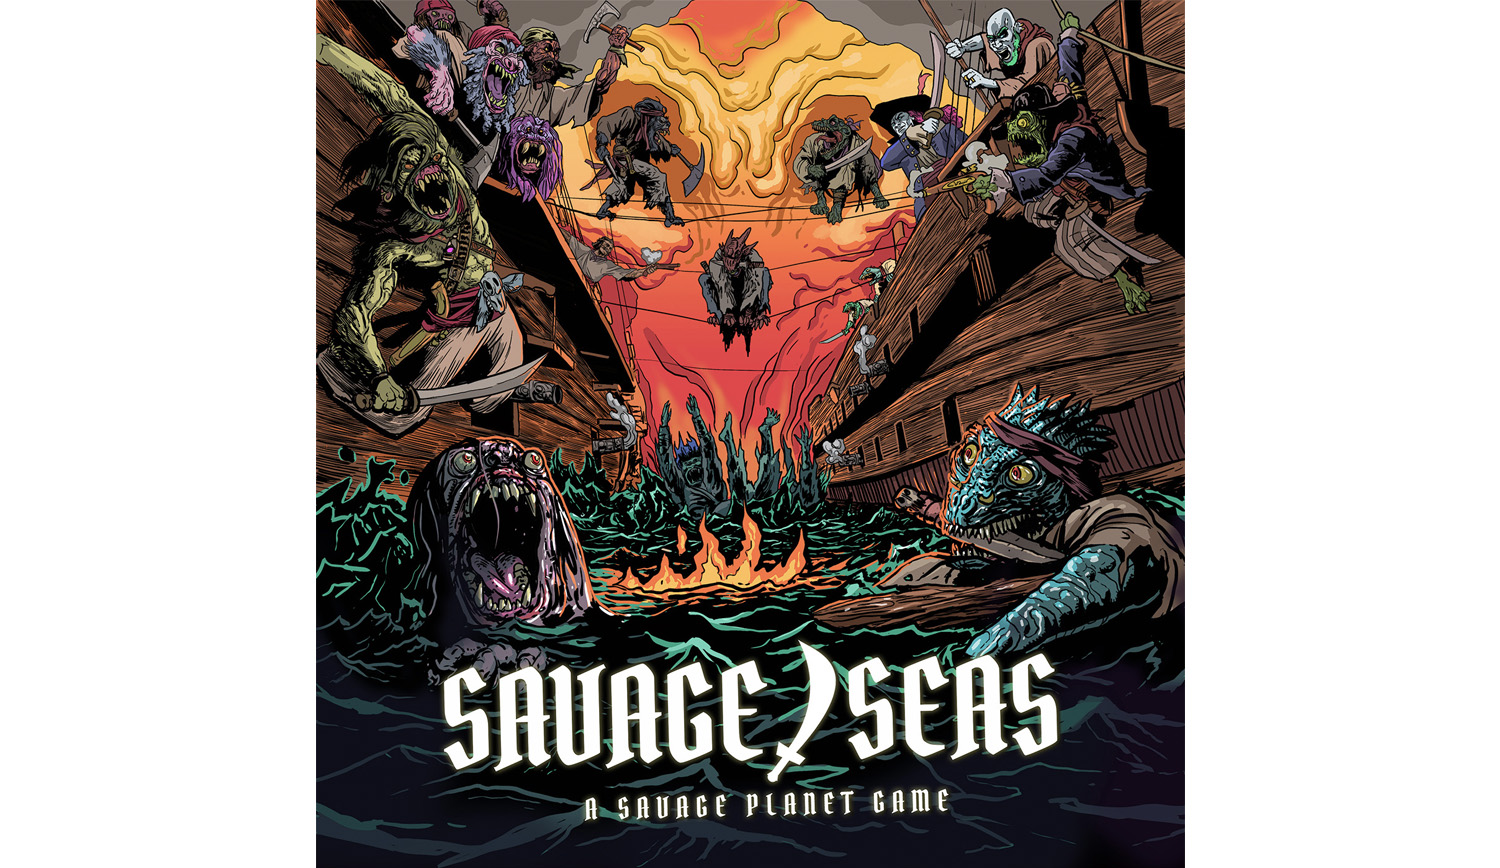 Savageseascover